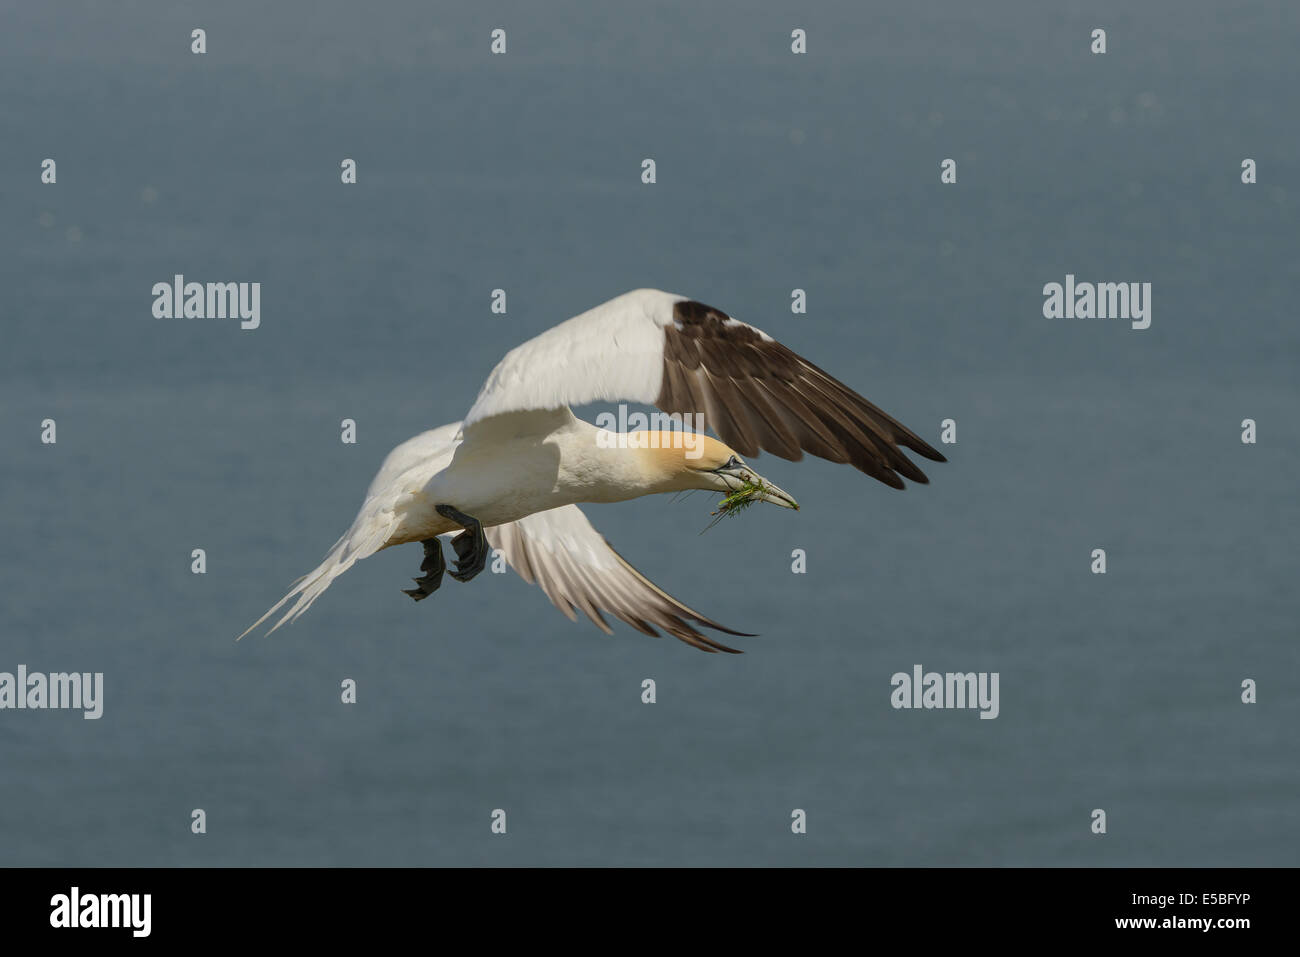 A northern gannet with nesting material in its beak, in flight soaring soars above the North Sea; UK - Stock Image